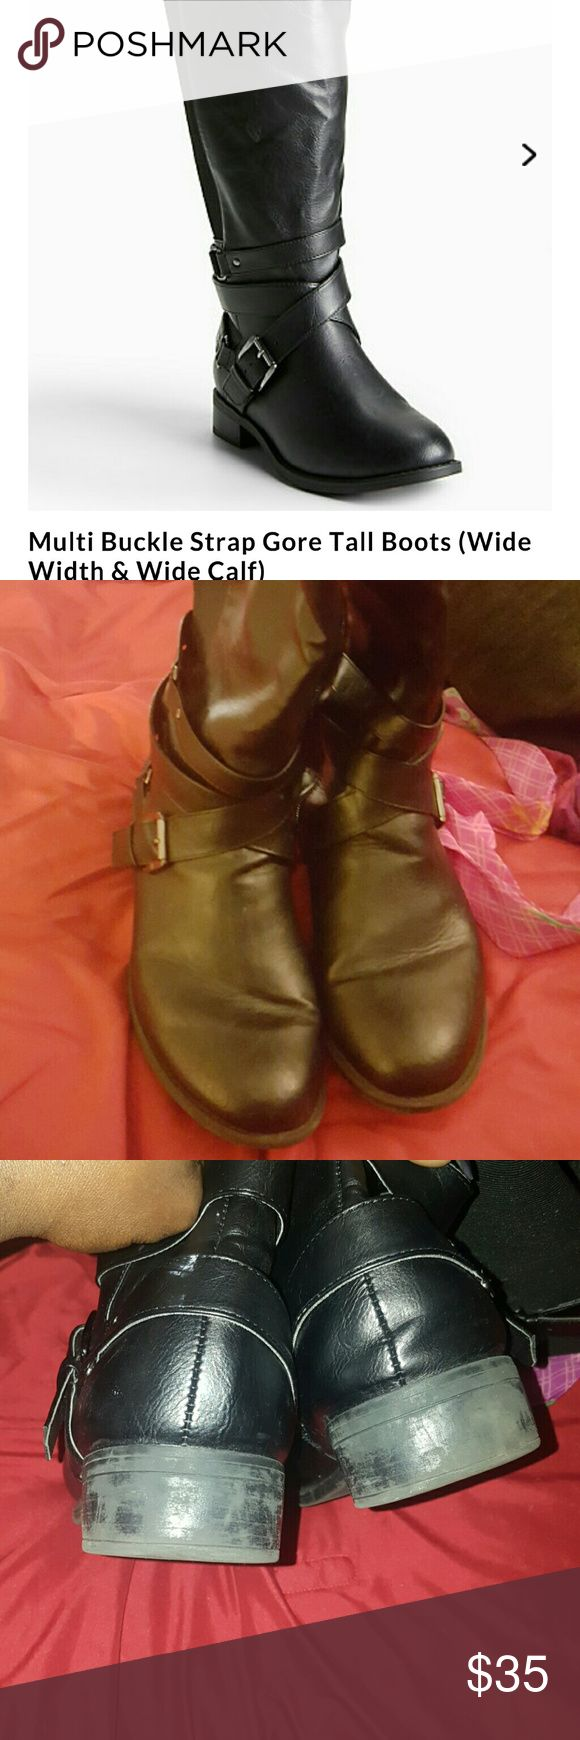 Multi Buckle Strap Gore Tall Boots size 11 used still available on website for 70 torrid  Shoes Over the Knee Boots